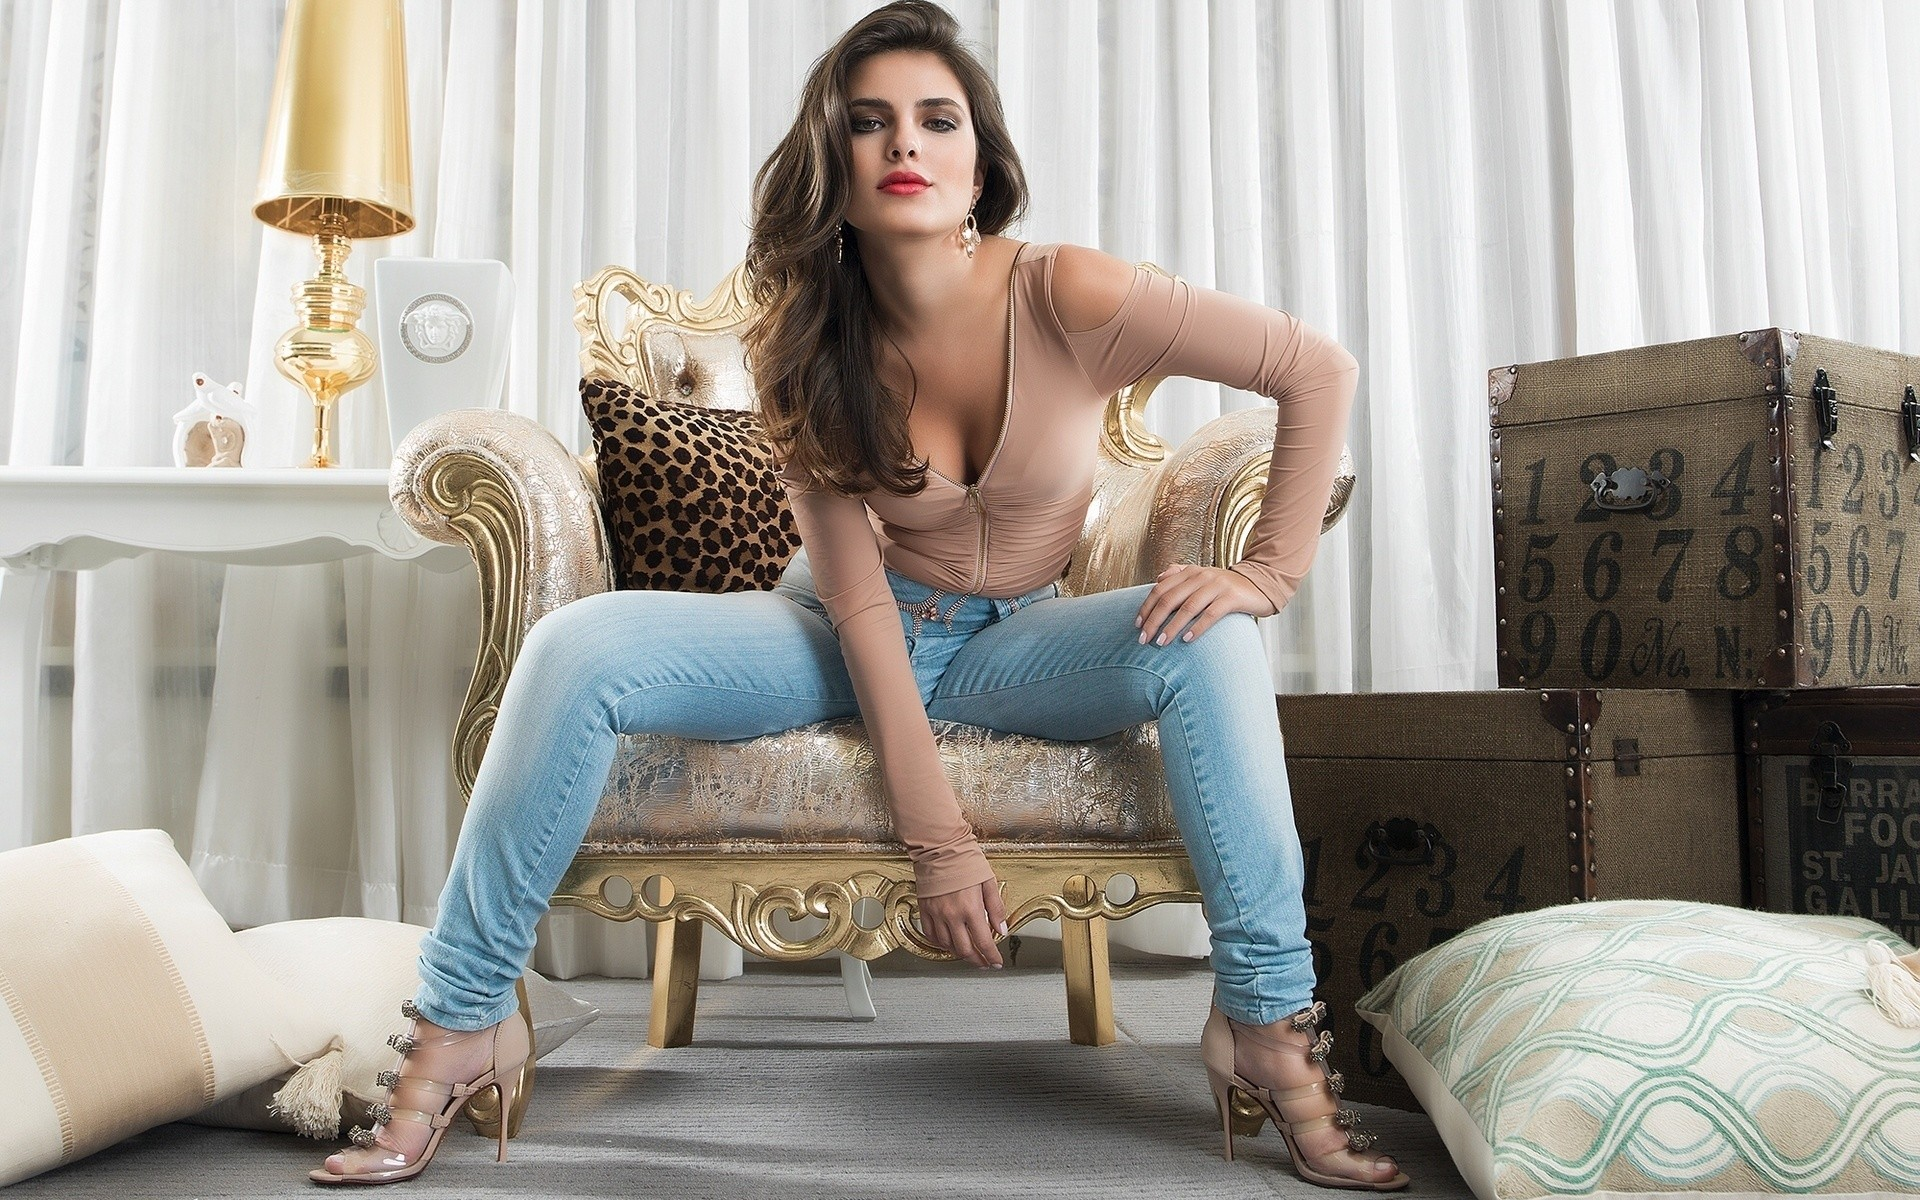 People 1920x1200 high heels jeans brunette animal print boxes chair pillow women lamp cleavage red lipstick long hair model